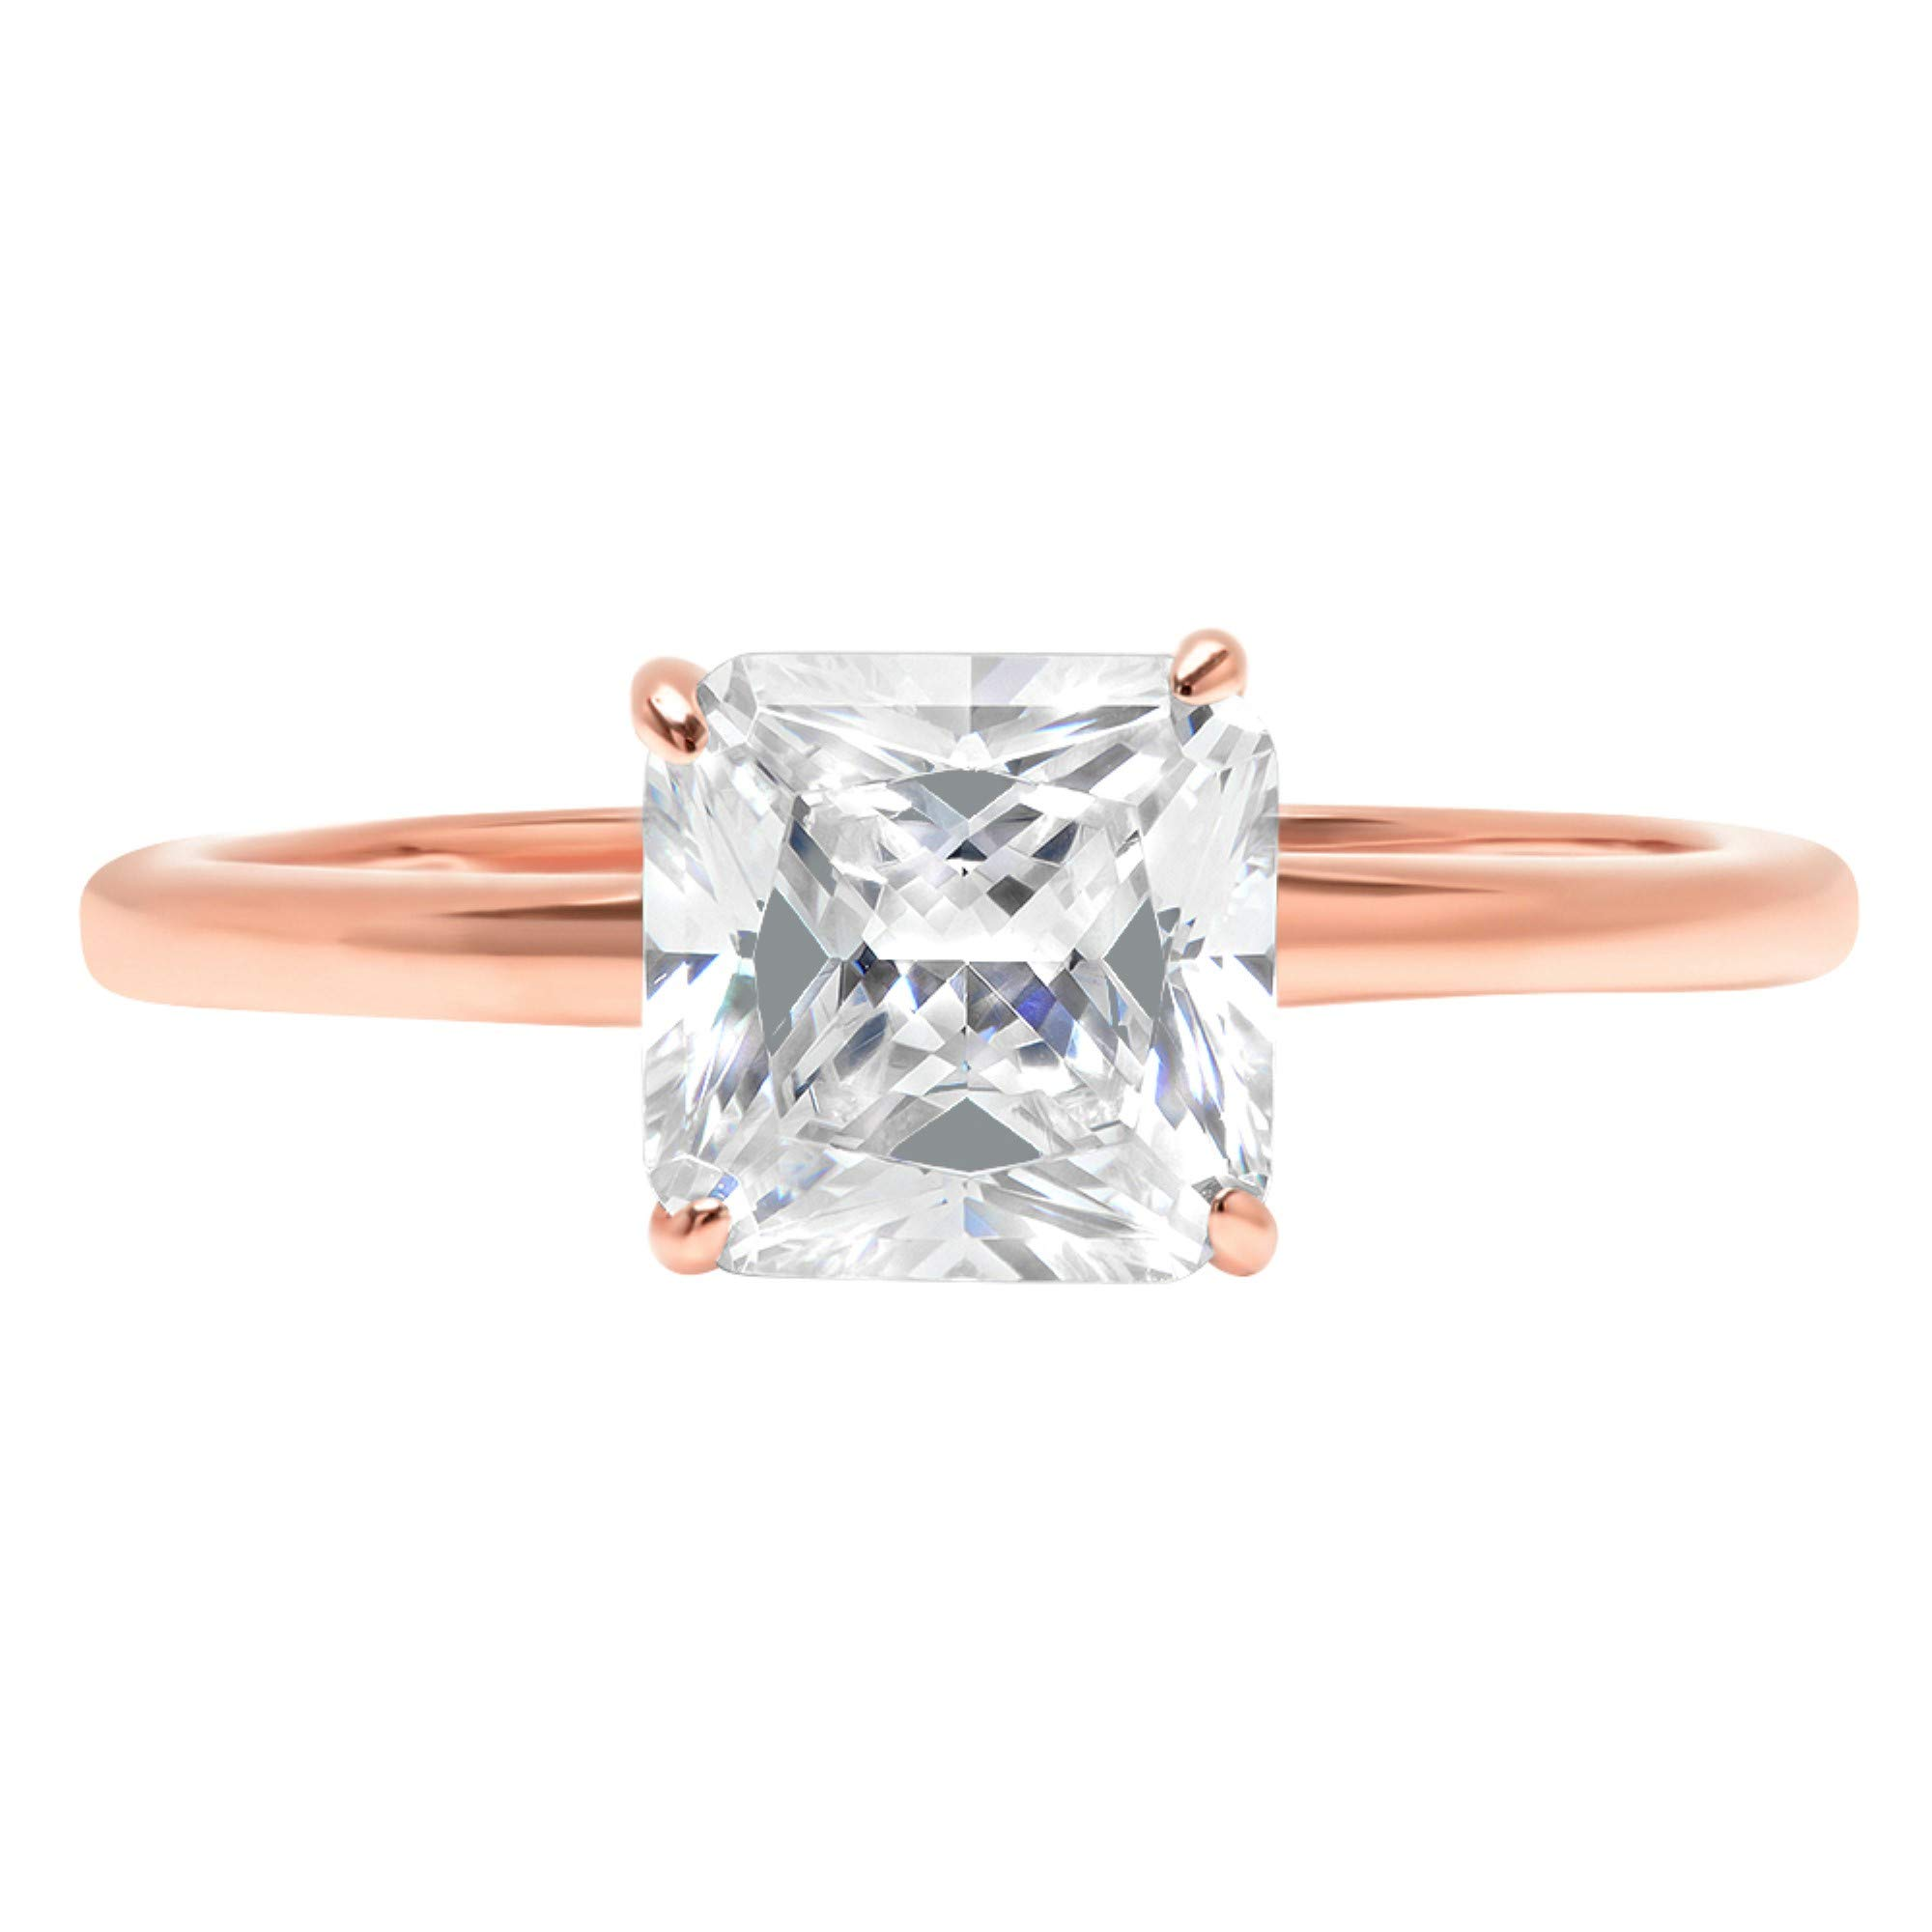 1.0 ct Brilliant Asscher Cut Solitaire Highest Quality Lab Created White Sapphire Ideal VVS1 D 4-Prong Engagement Wedding Bridal Promise Anniversary Ring Solid Real 14k Rose Gold for Women